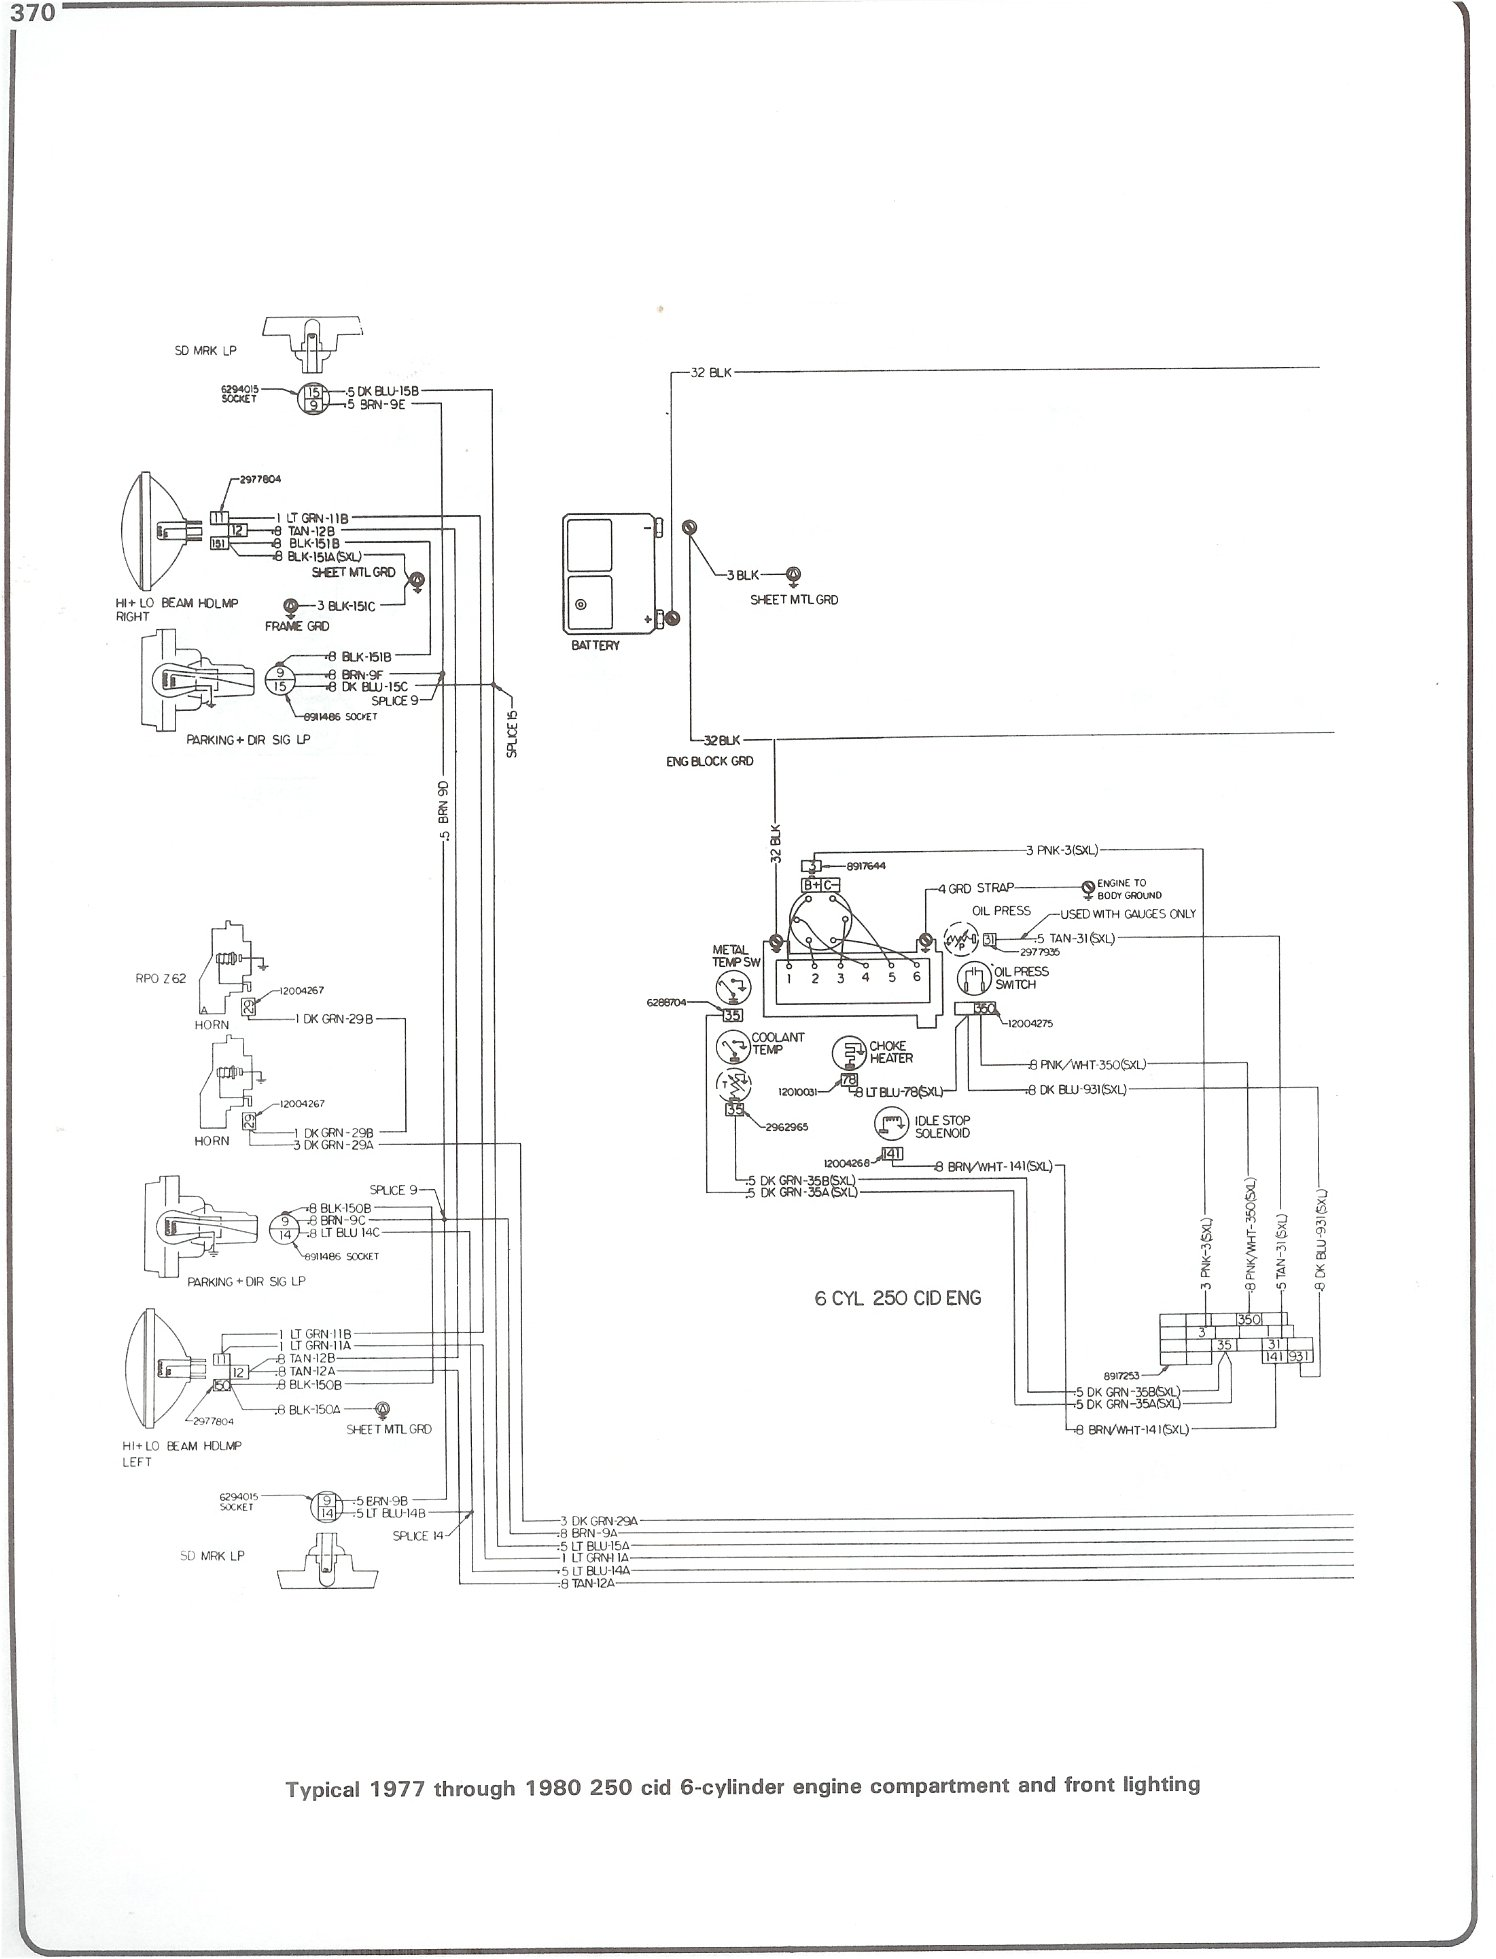 1985 c10 wiring diagram blower motor manual e books 1968 C10 Wiring-Diagram complete 73 87 wiring diagrams77 80 250 i6 engine wiring and front lighting